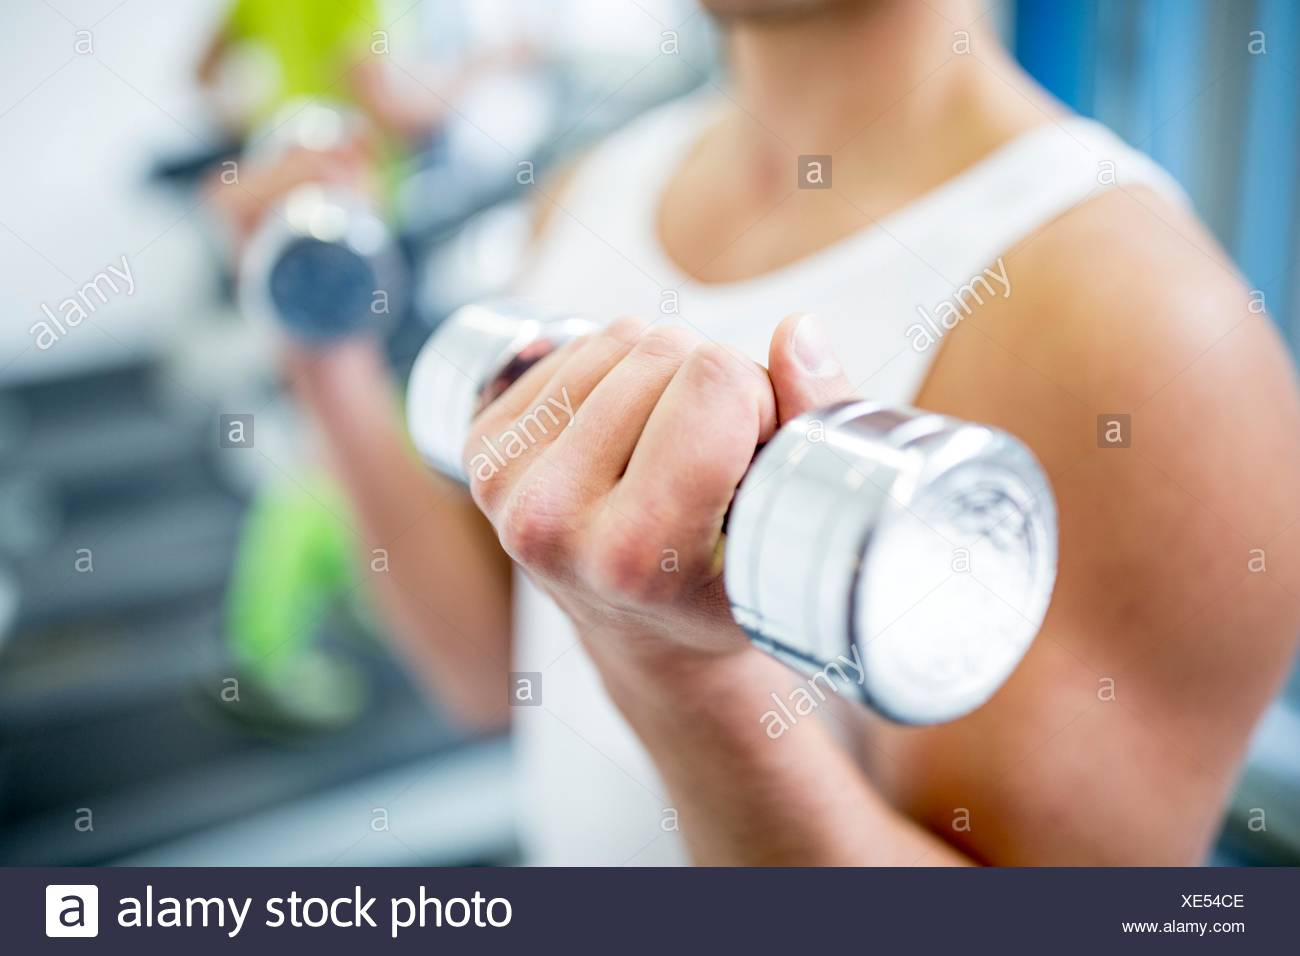 PROPERTY RELEASED. MODEL RELEASED. Young man holding dumbbells while work out, close-up. - Stock Image